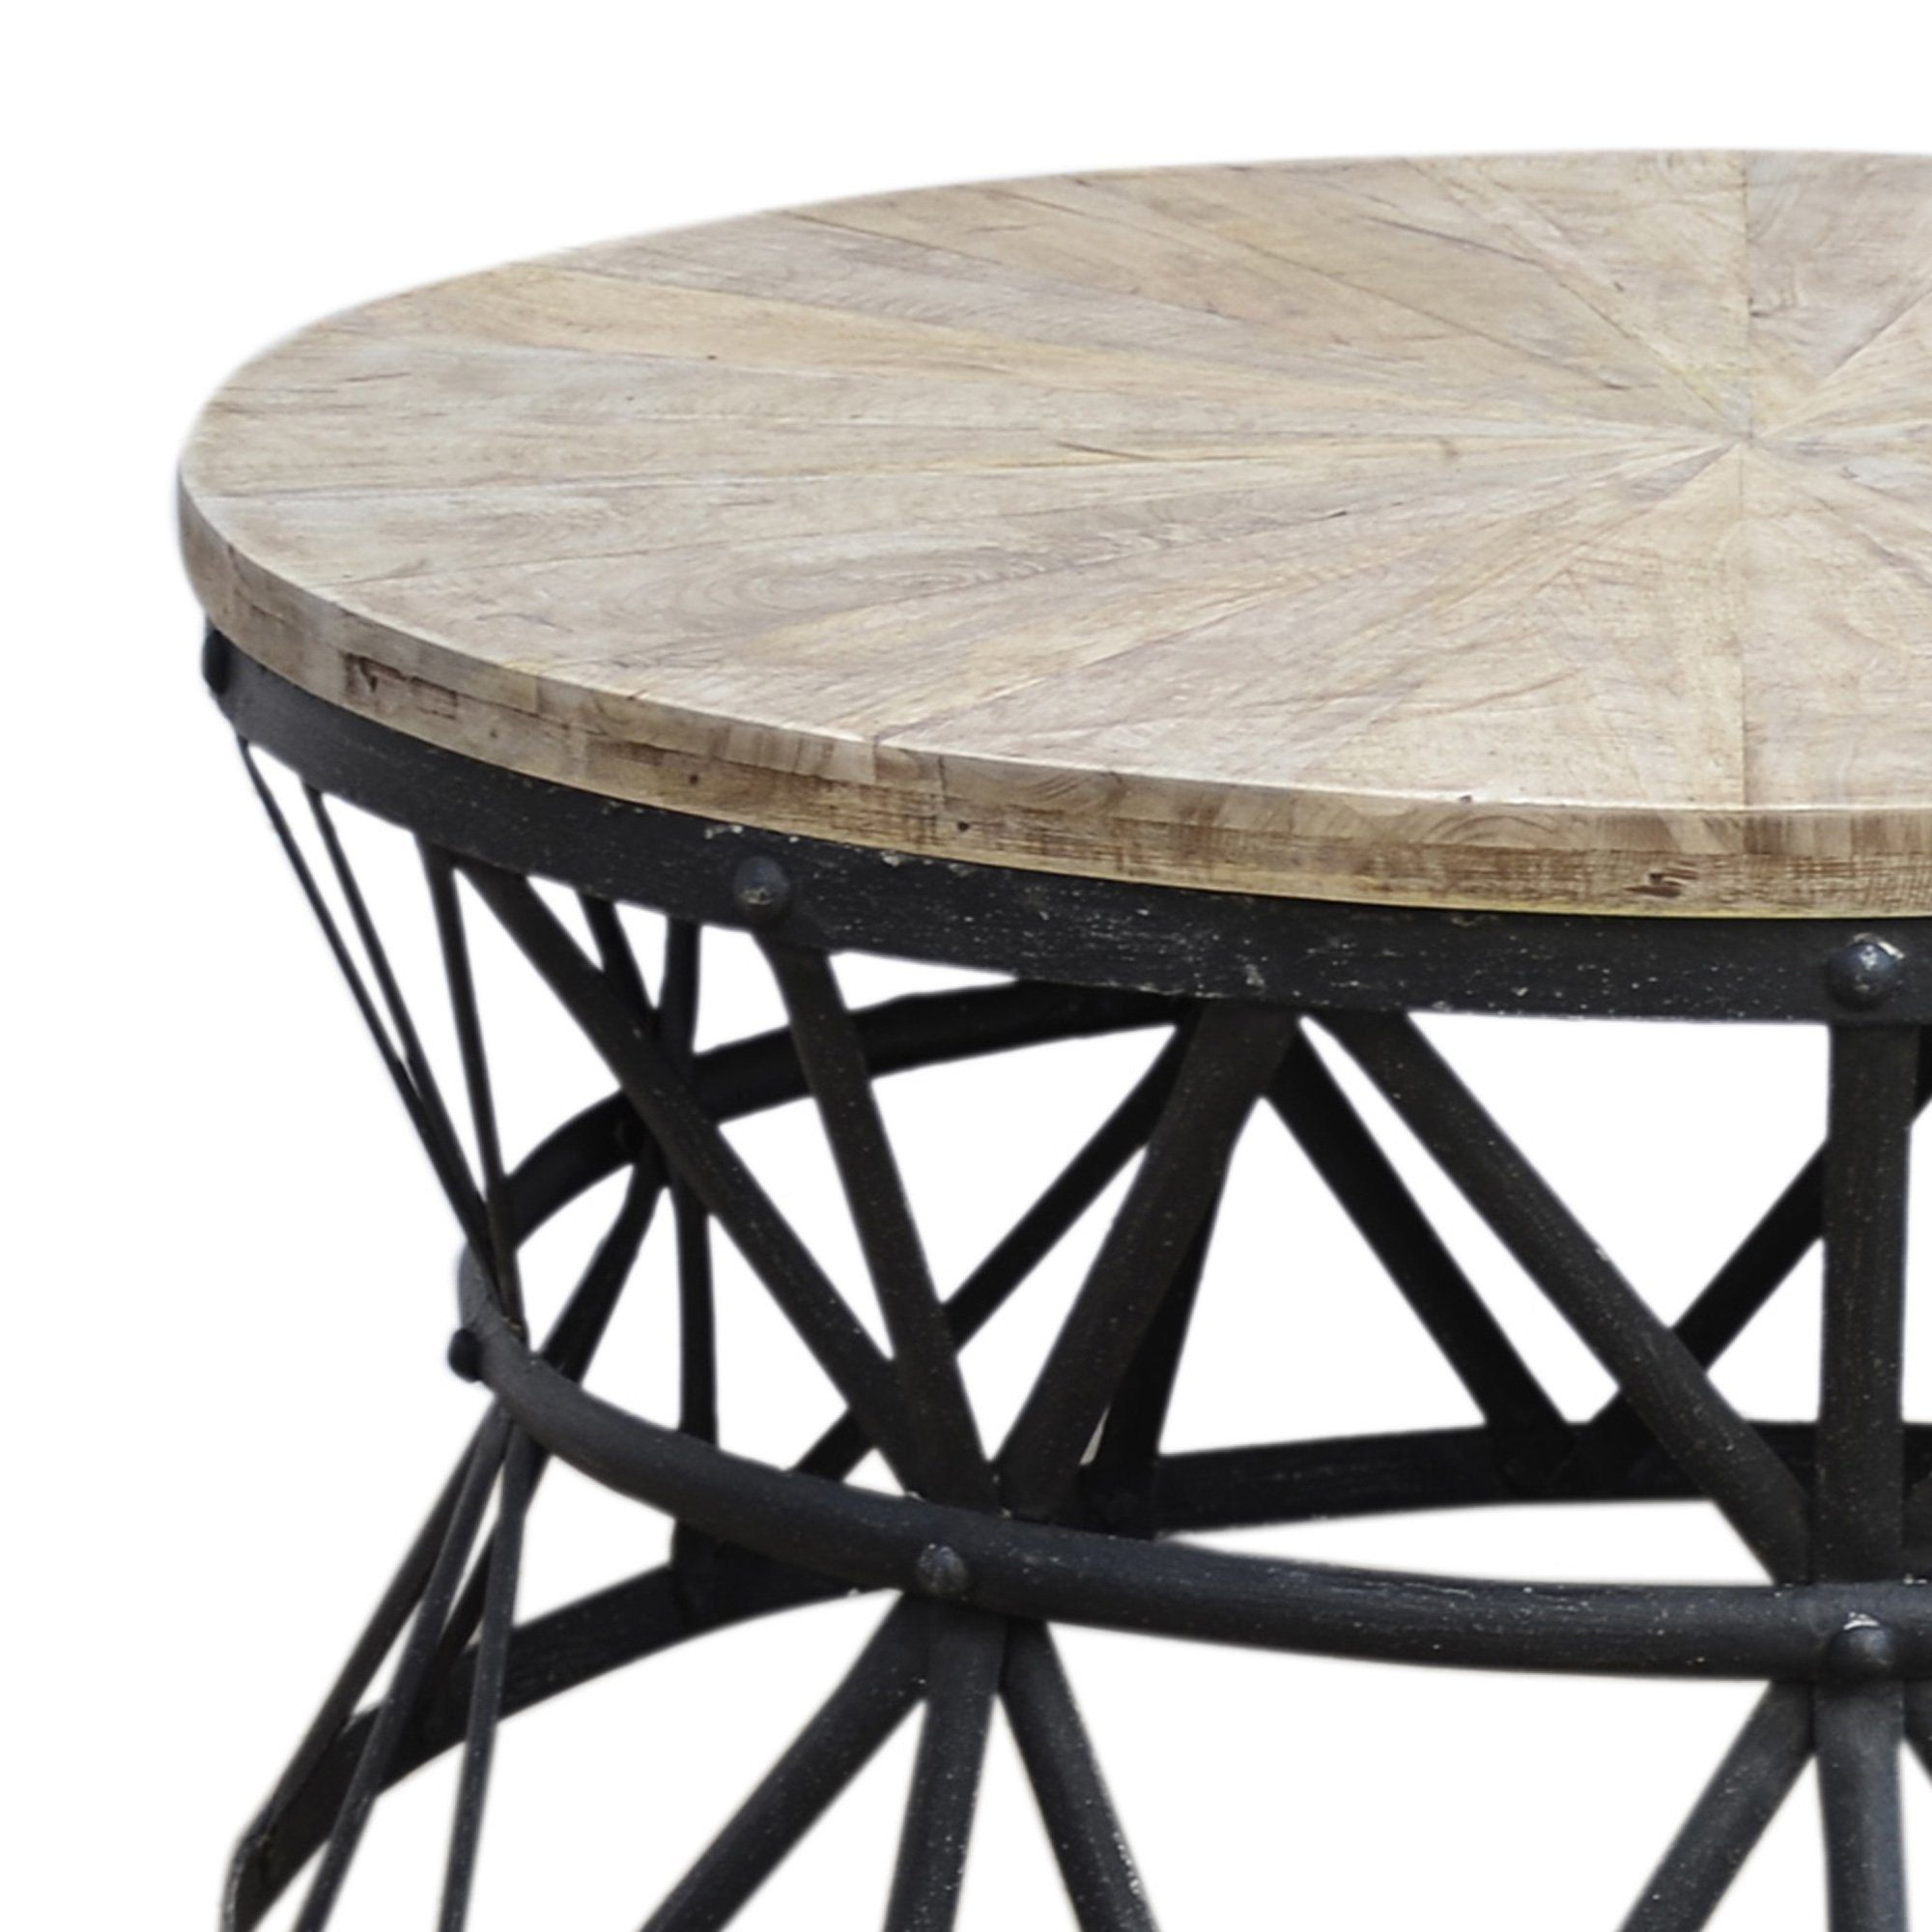 philbee handmade tables stools round online table coffee with timber iron cast buy collections